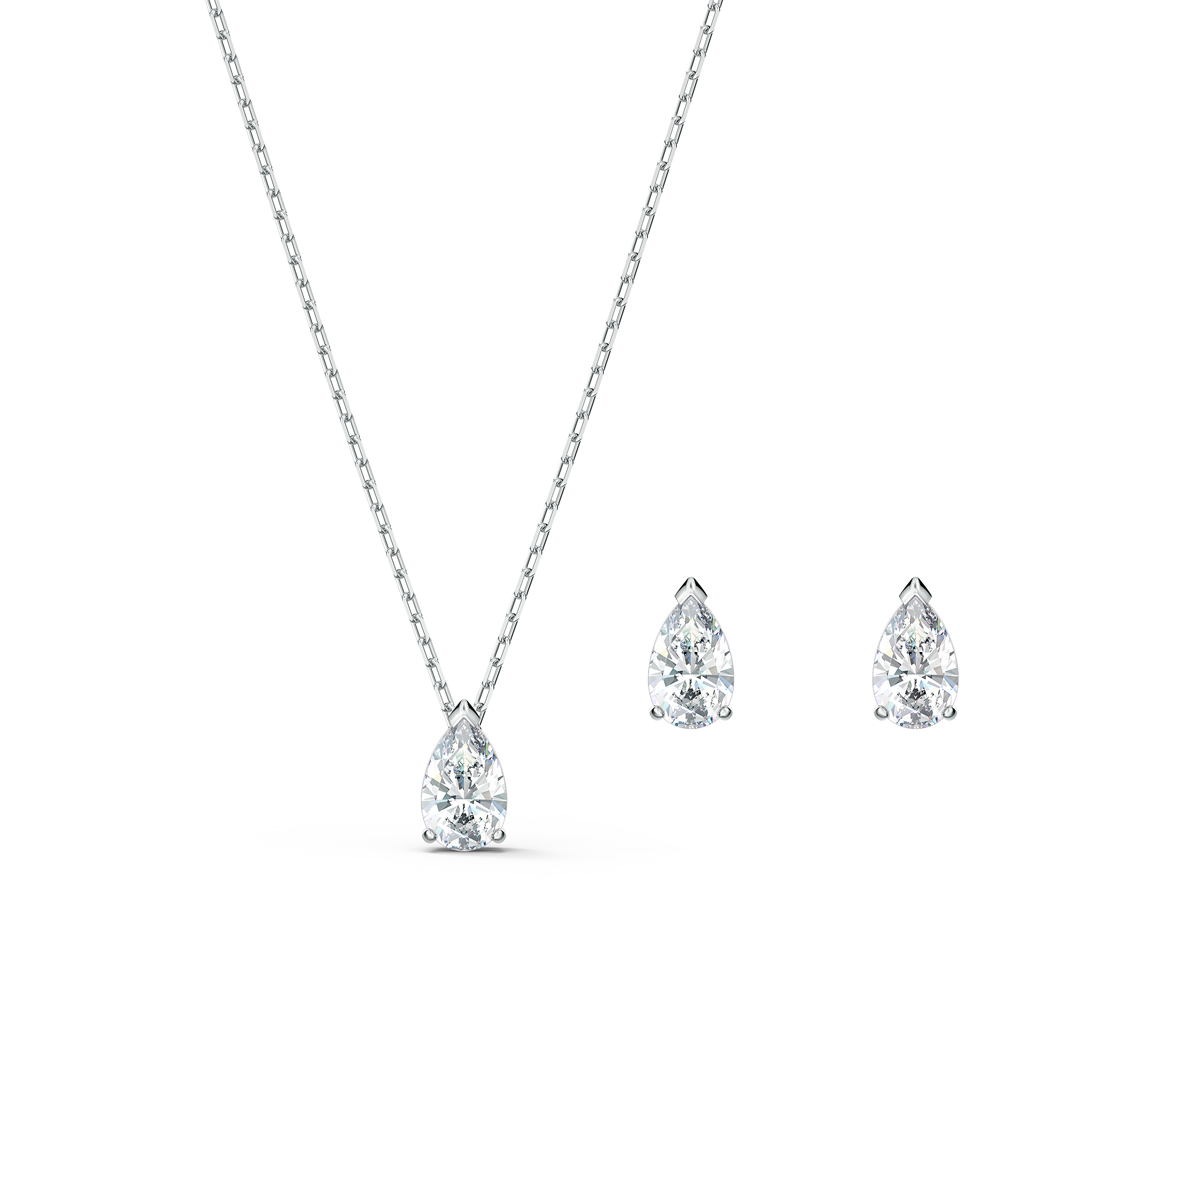 Swarovski Attract Pear Necklace and Earrings Set, White, Rhodium Plated